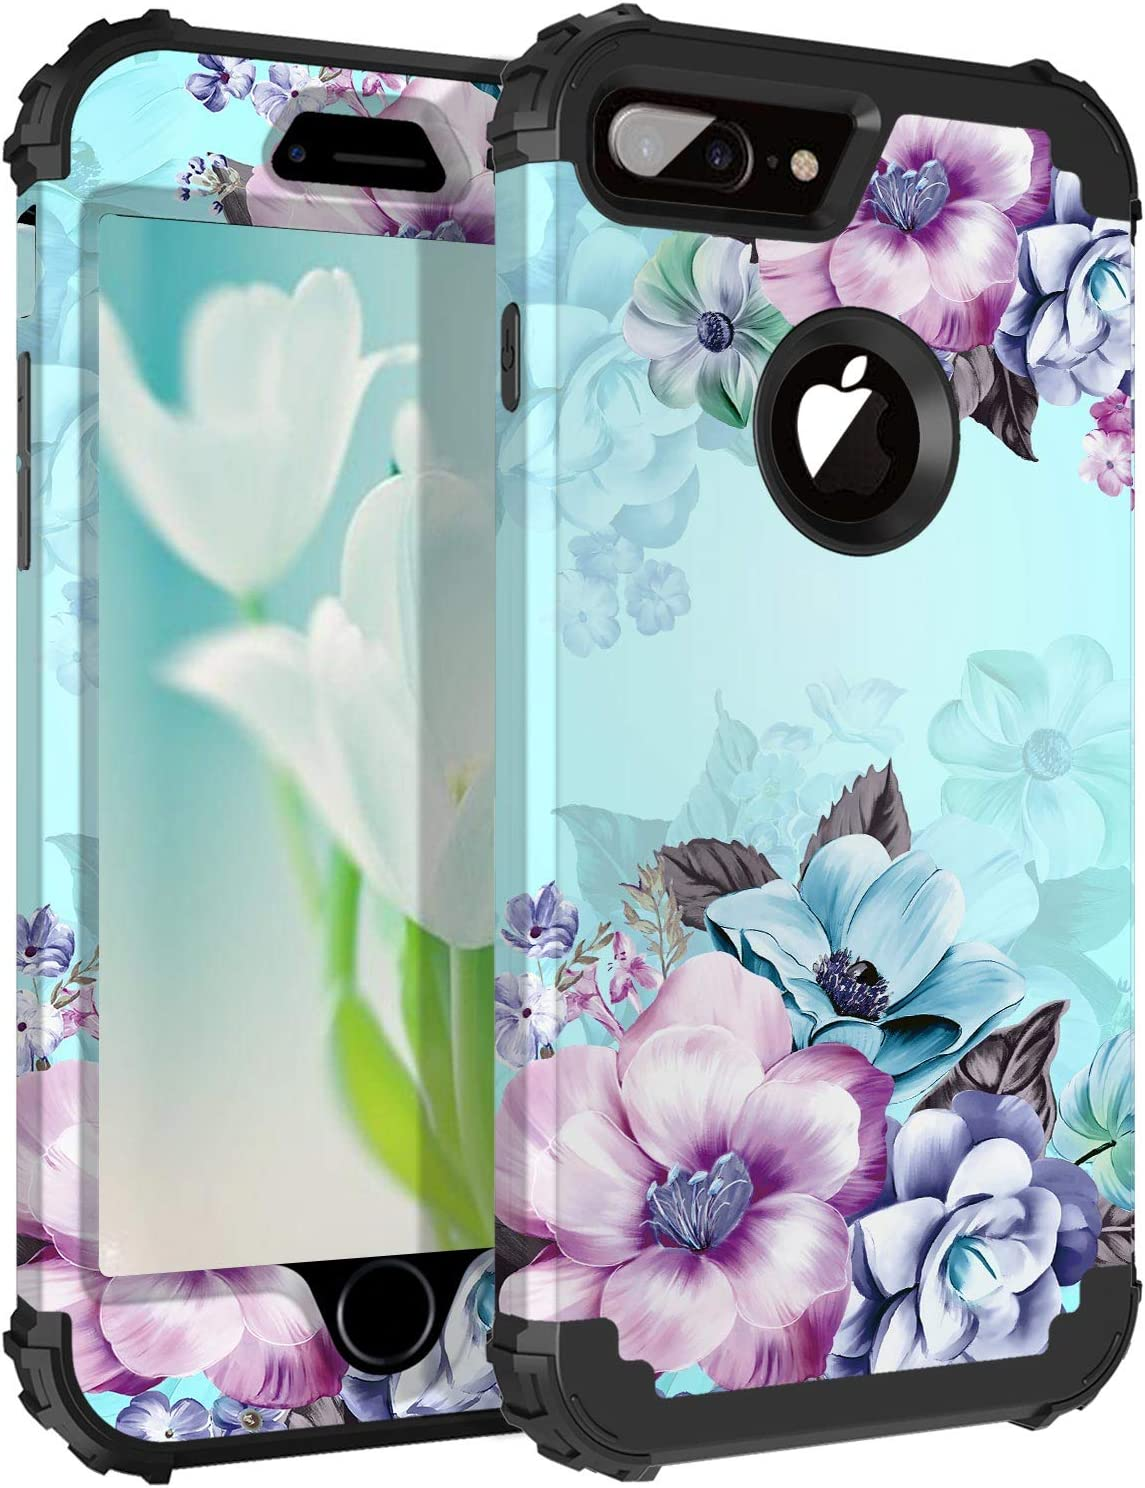 Casetego Compatible with iPhone 8 Plus Case,iPhone 7 Plus Case,Floral Three Layer Heavy Duty Hybrid Sturdy Shockproof Protective Cover Case for Apple iPhone 8 Plus/7 Plus,Blue Flower